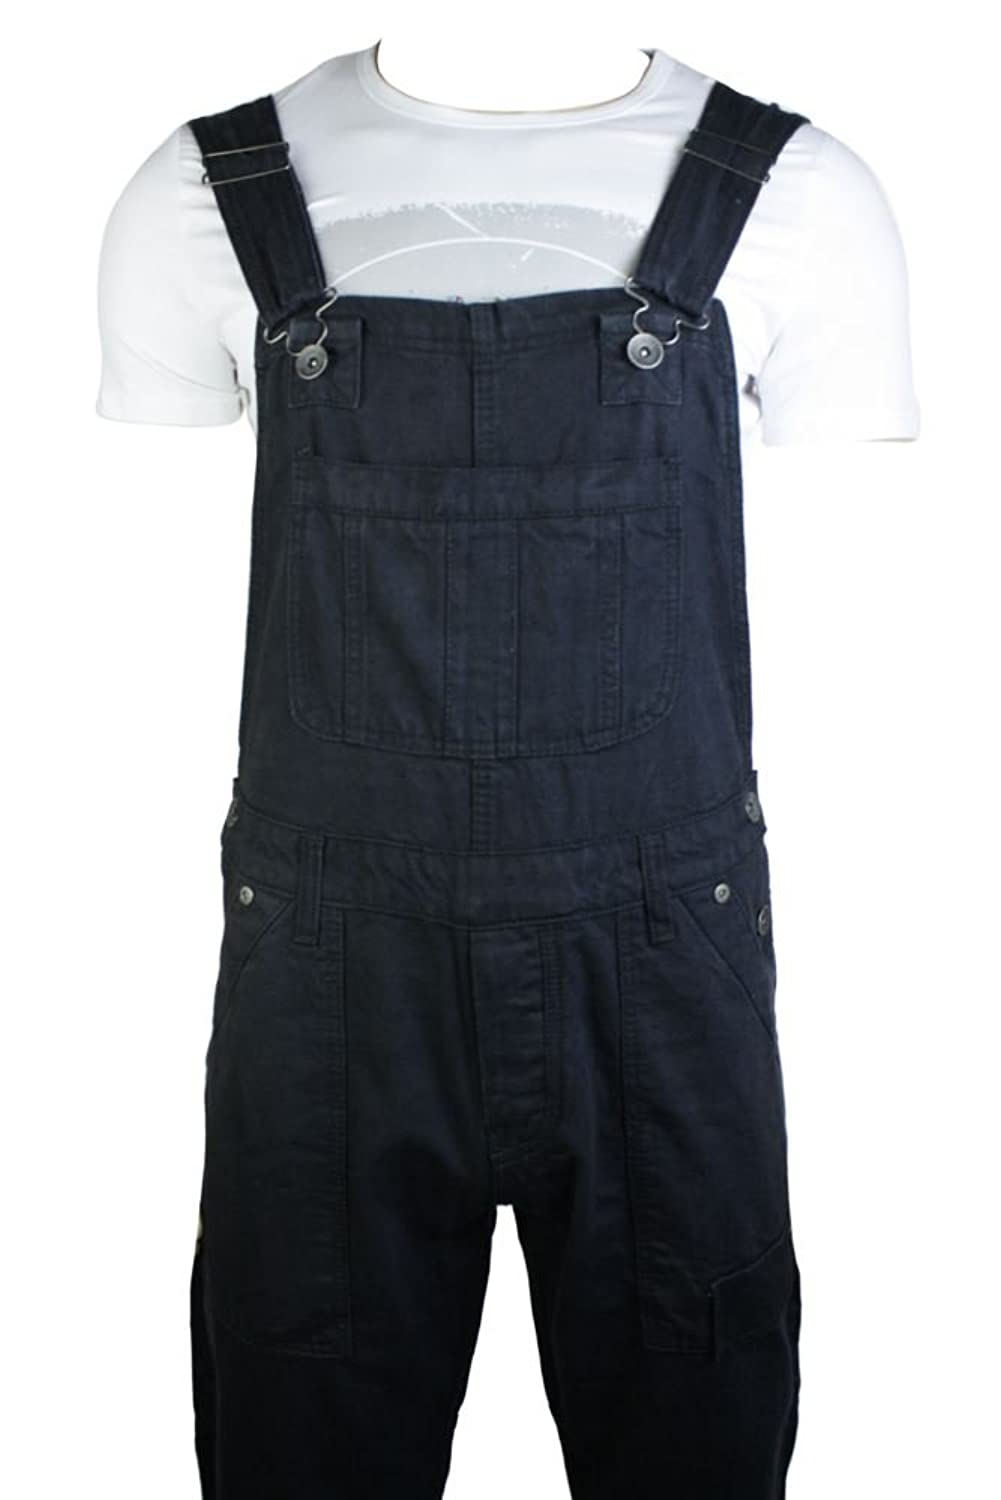 Mens Dungarees Jeans Black Turn Up Jeans Combat Pockets Casual ...